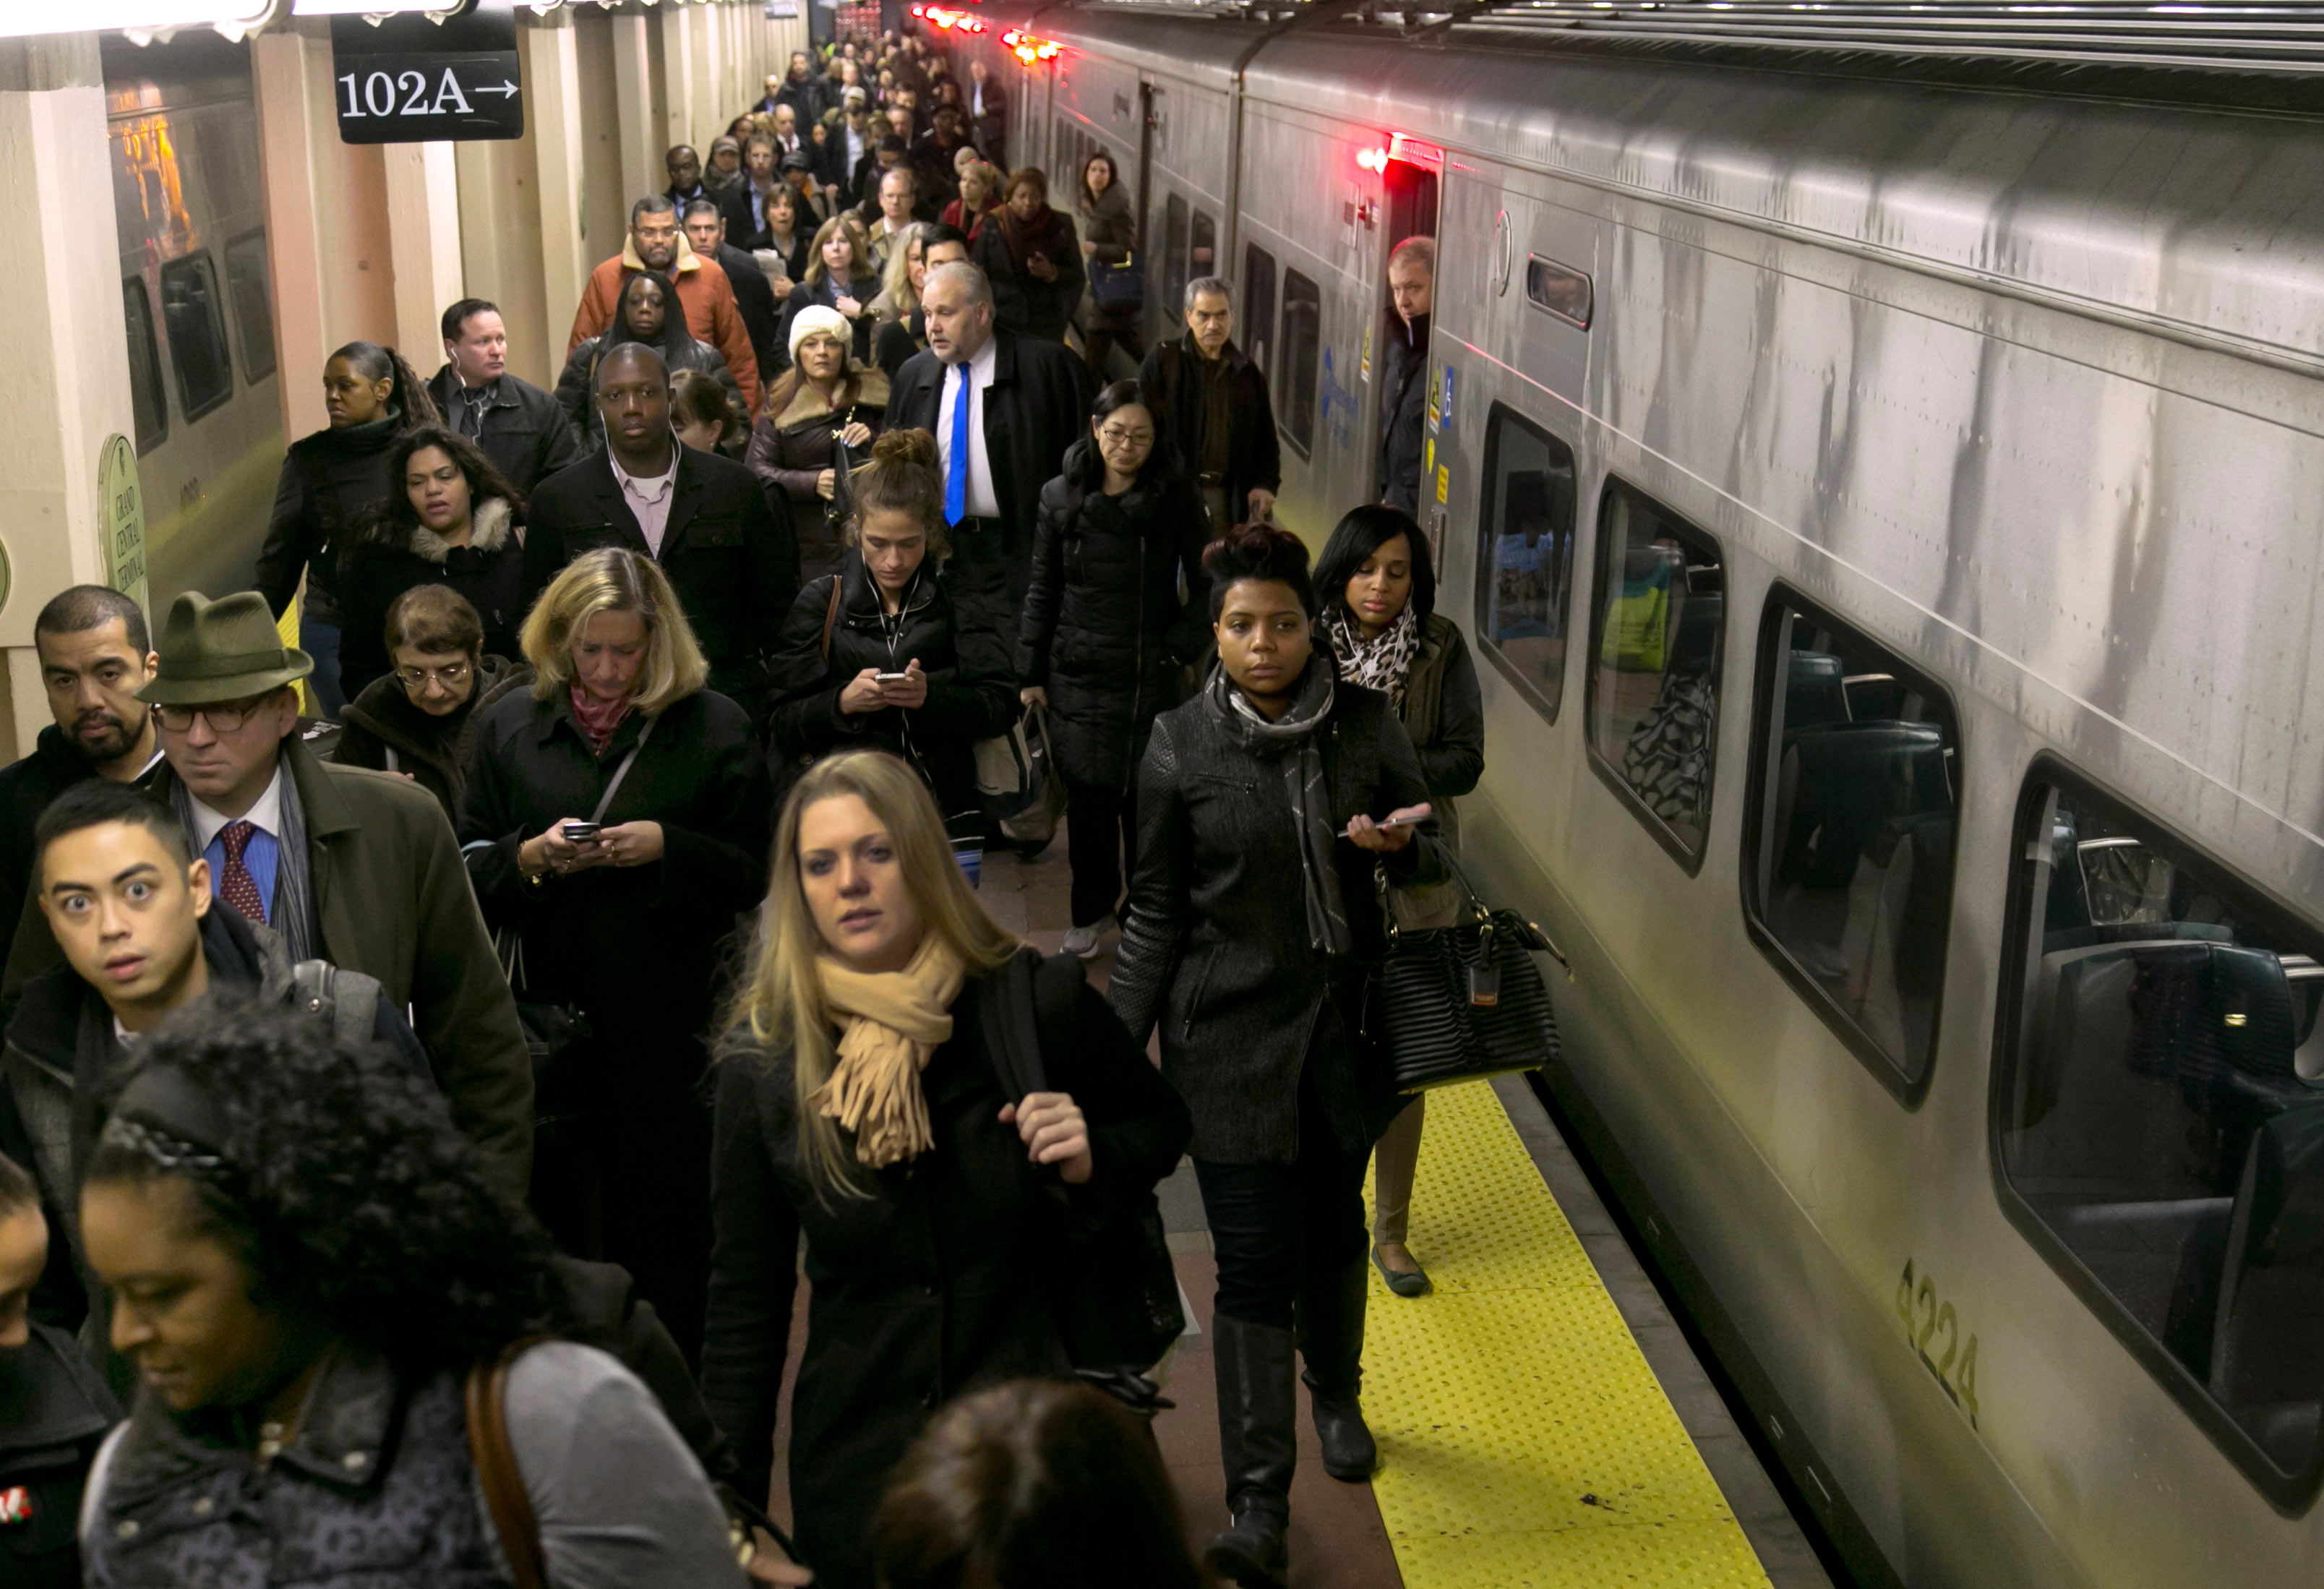 Passengers exit a Hudson Line Metro-North train at New York